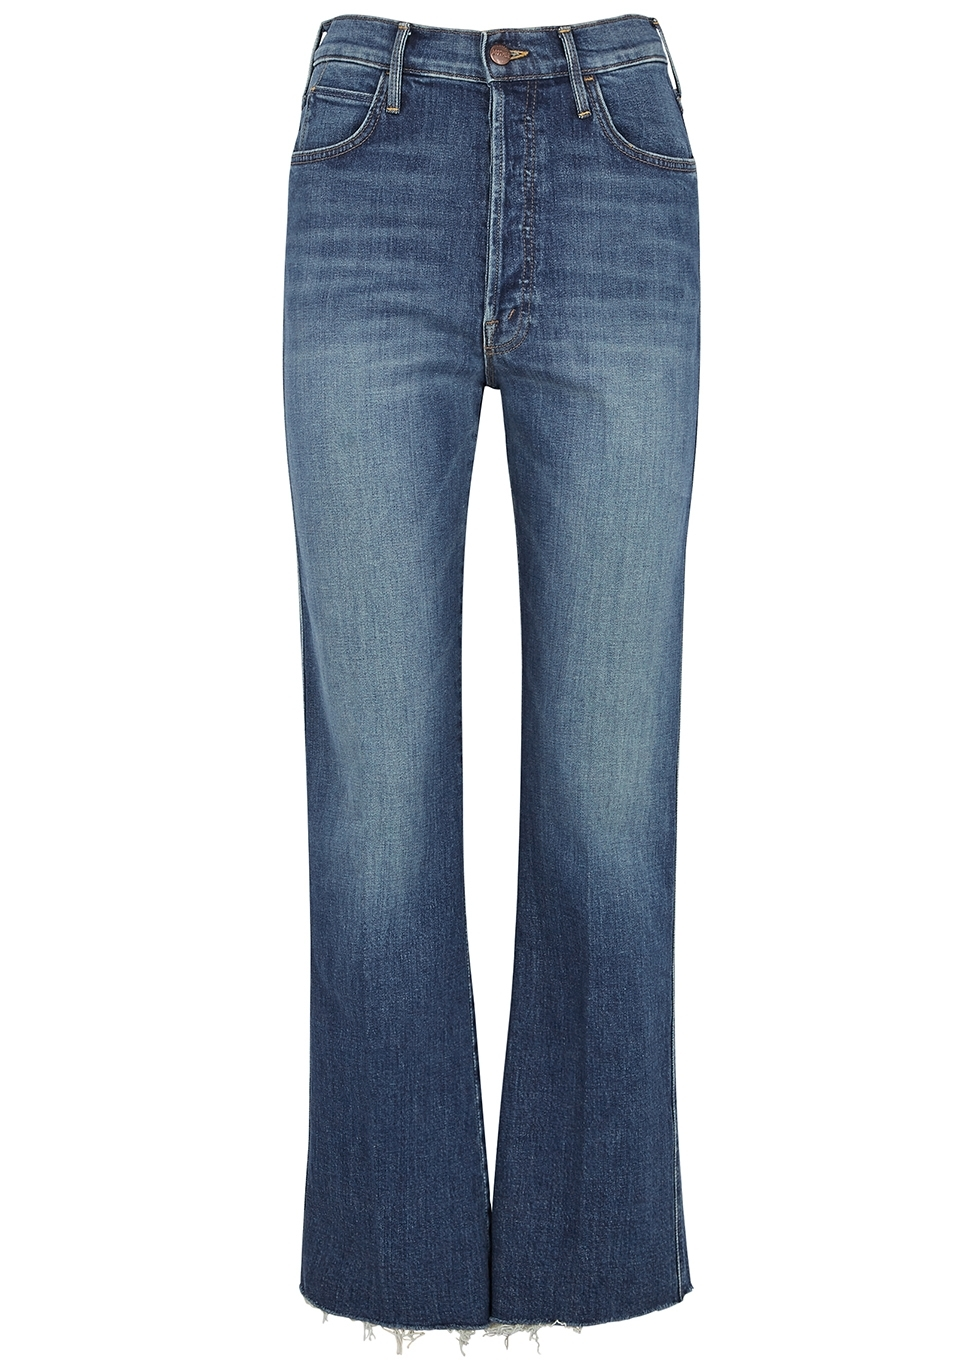 a783dc1412c1 Women s Designer Denim Jeans - Harvey Nichols